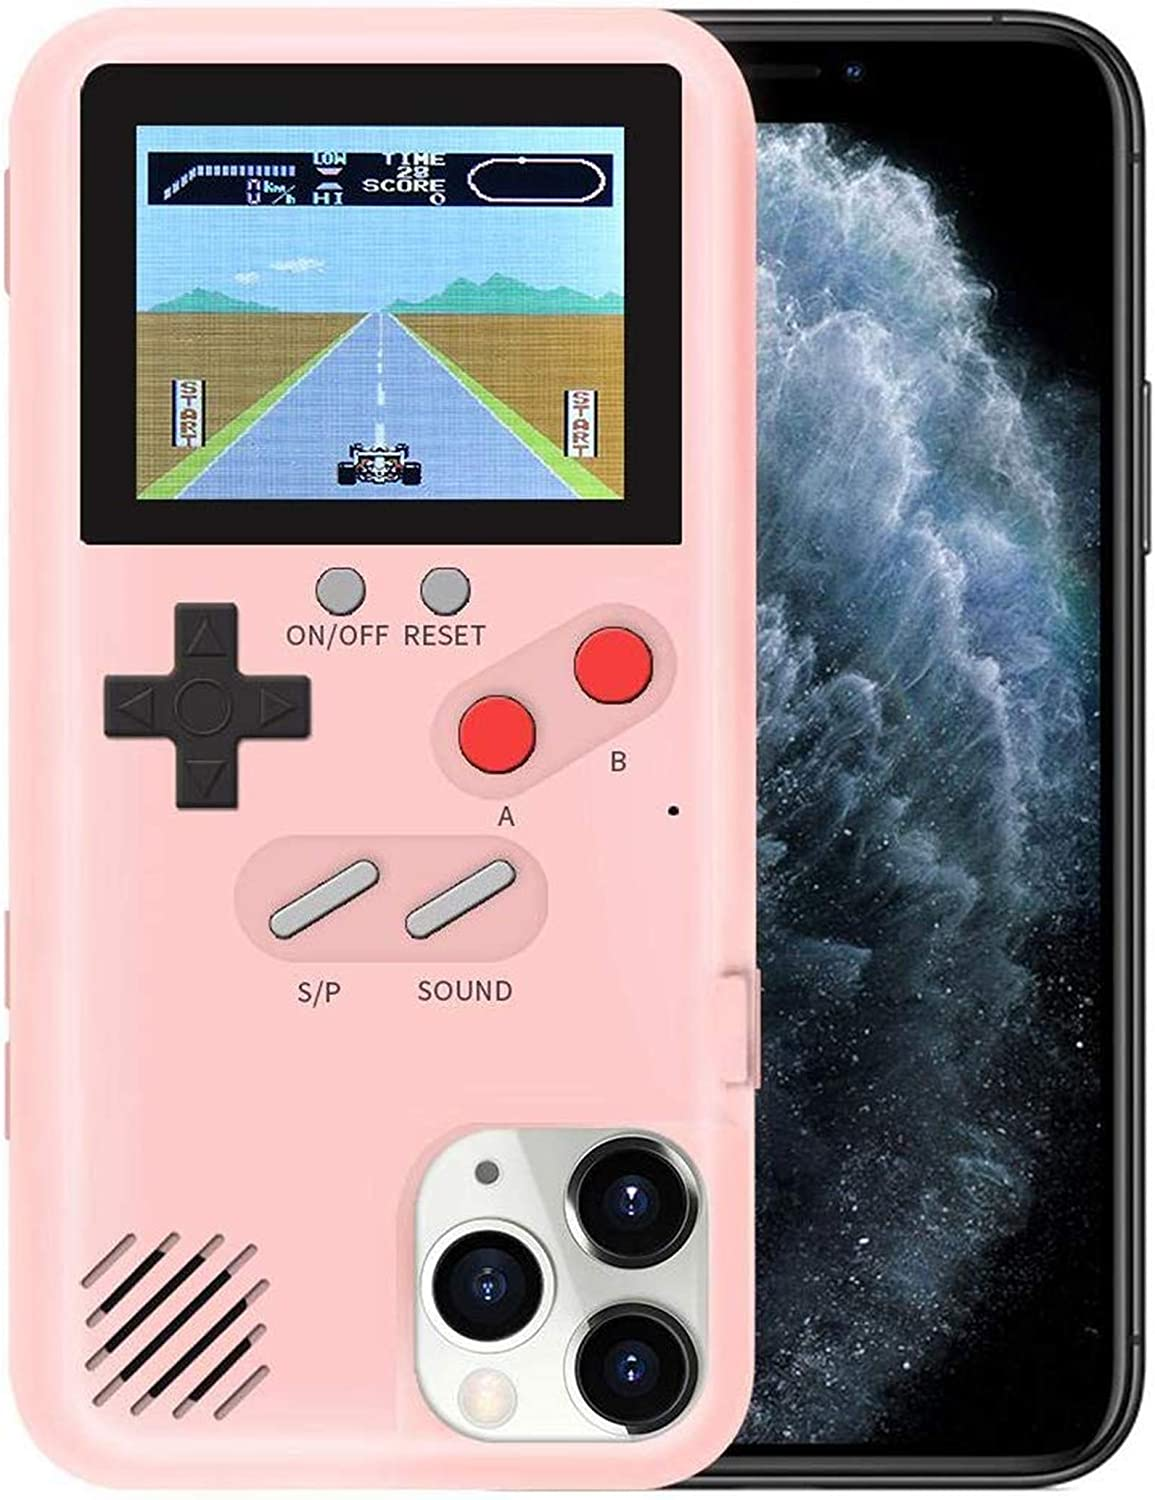 YLANK Gameboy Case for iPhone, Retro 3D Gameboy Design Style Silicone Cover Case with 36 Classic Retro Games,Color Screen Game Cover Case for IPHONE6/6S/7/8 4.7inch (Pink,IPHONE6/6S/7/8)